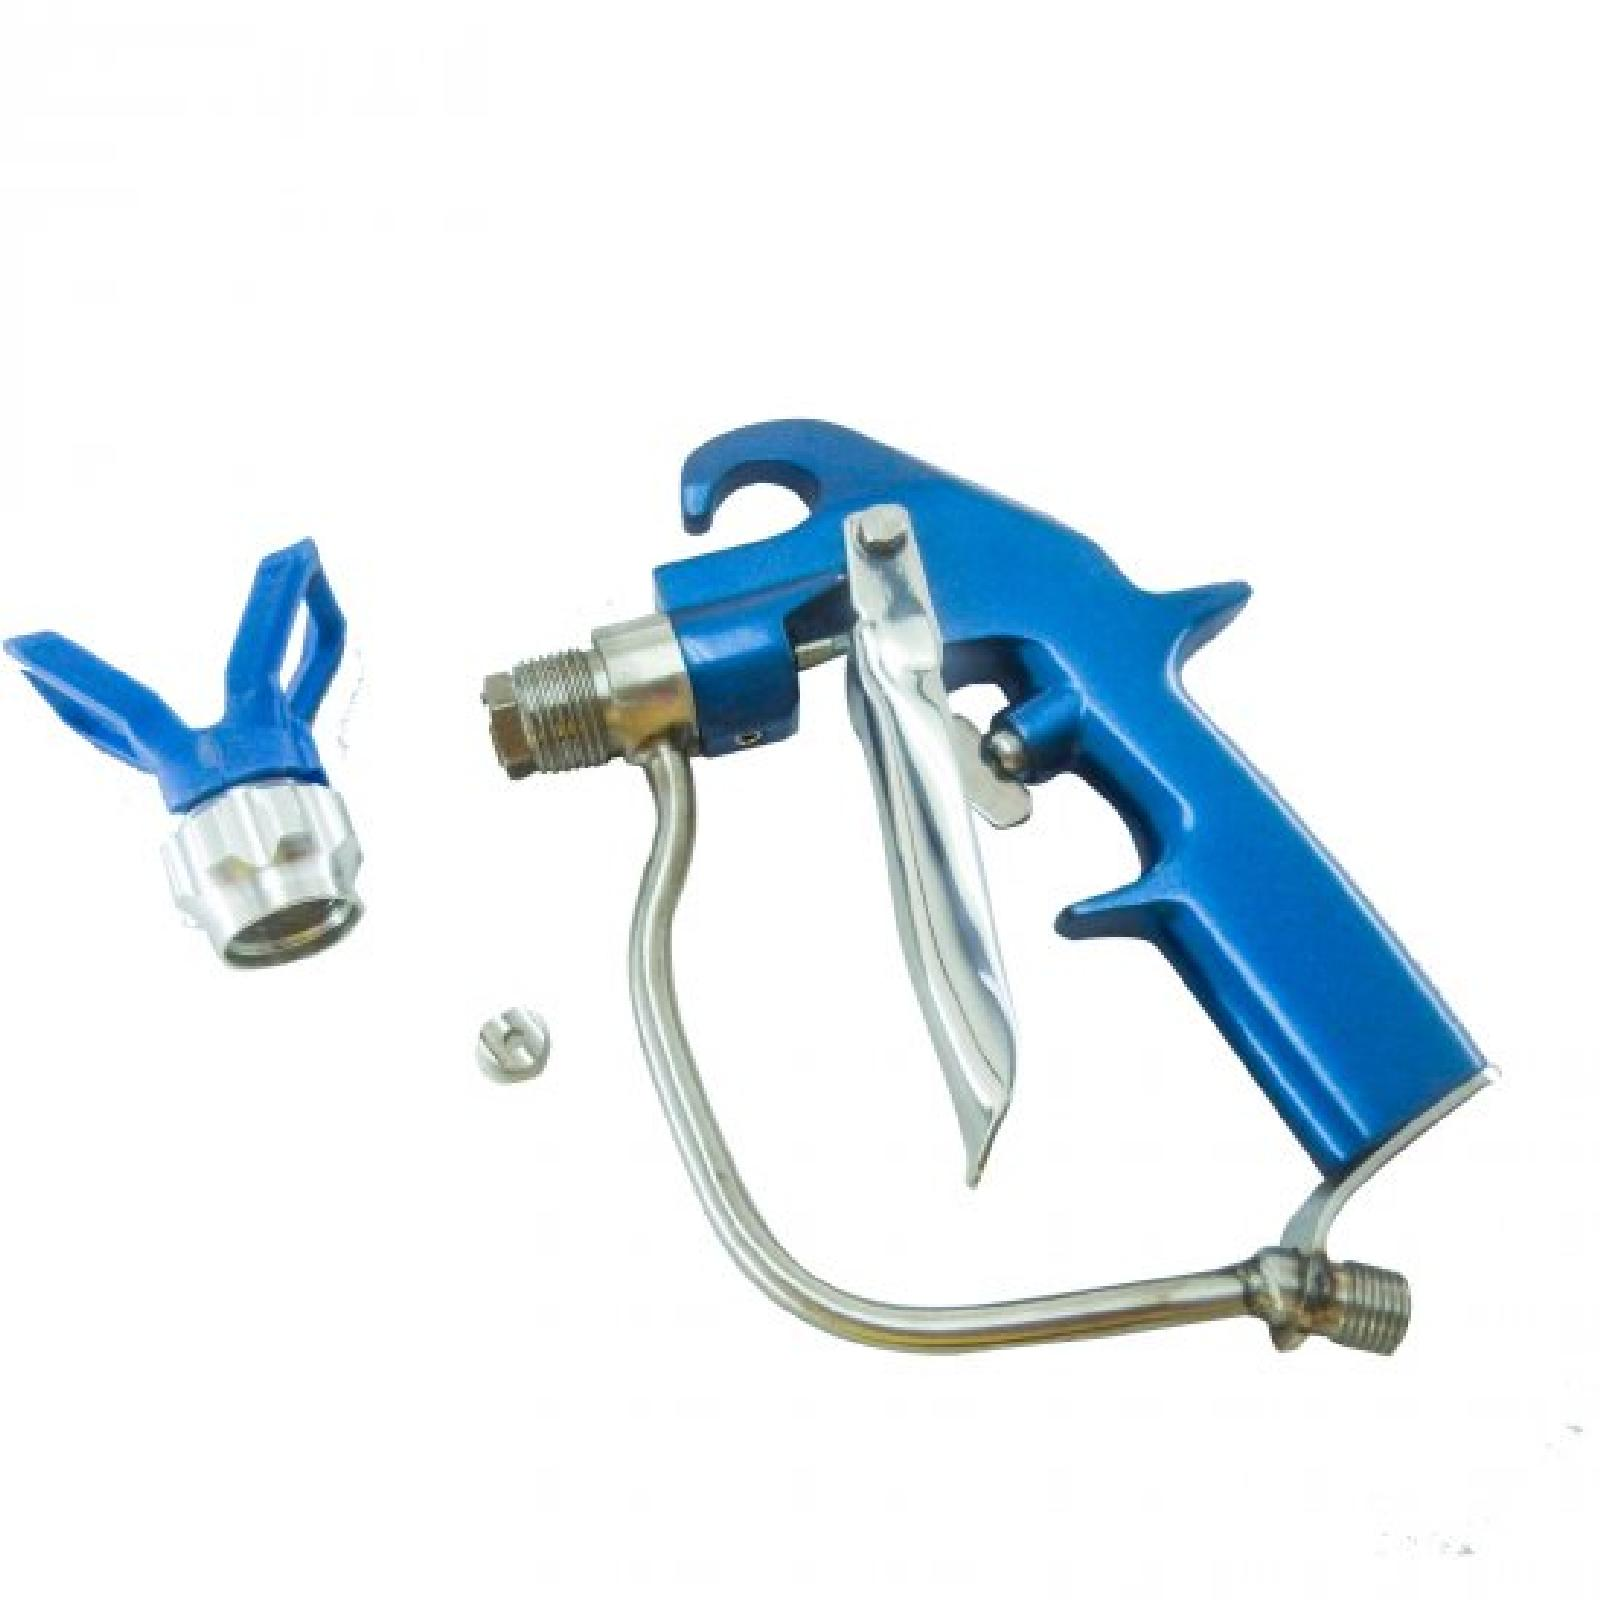 Paint spray gun replacement for Graco 241705